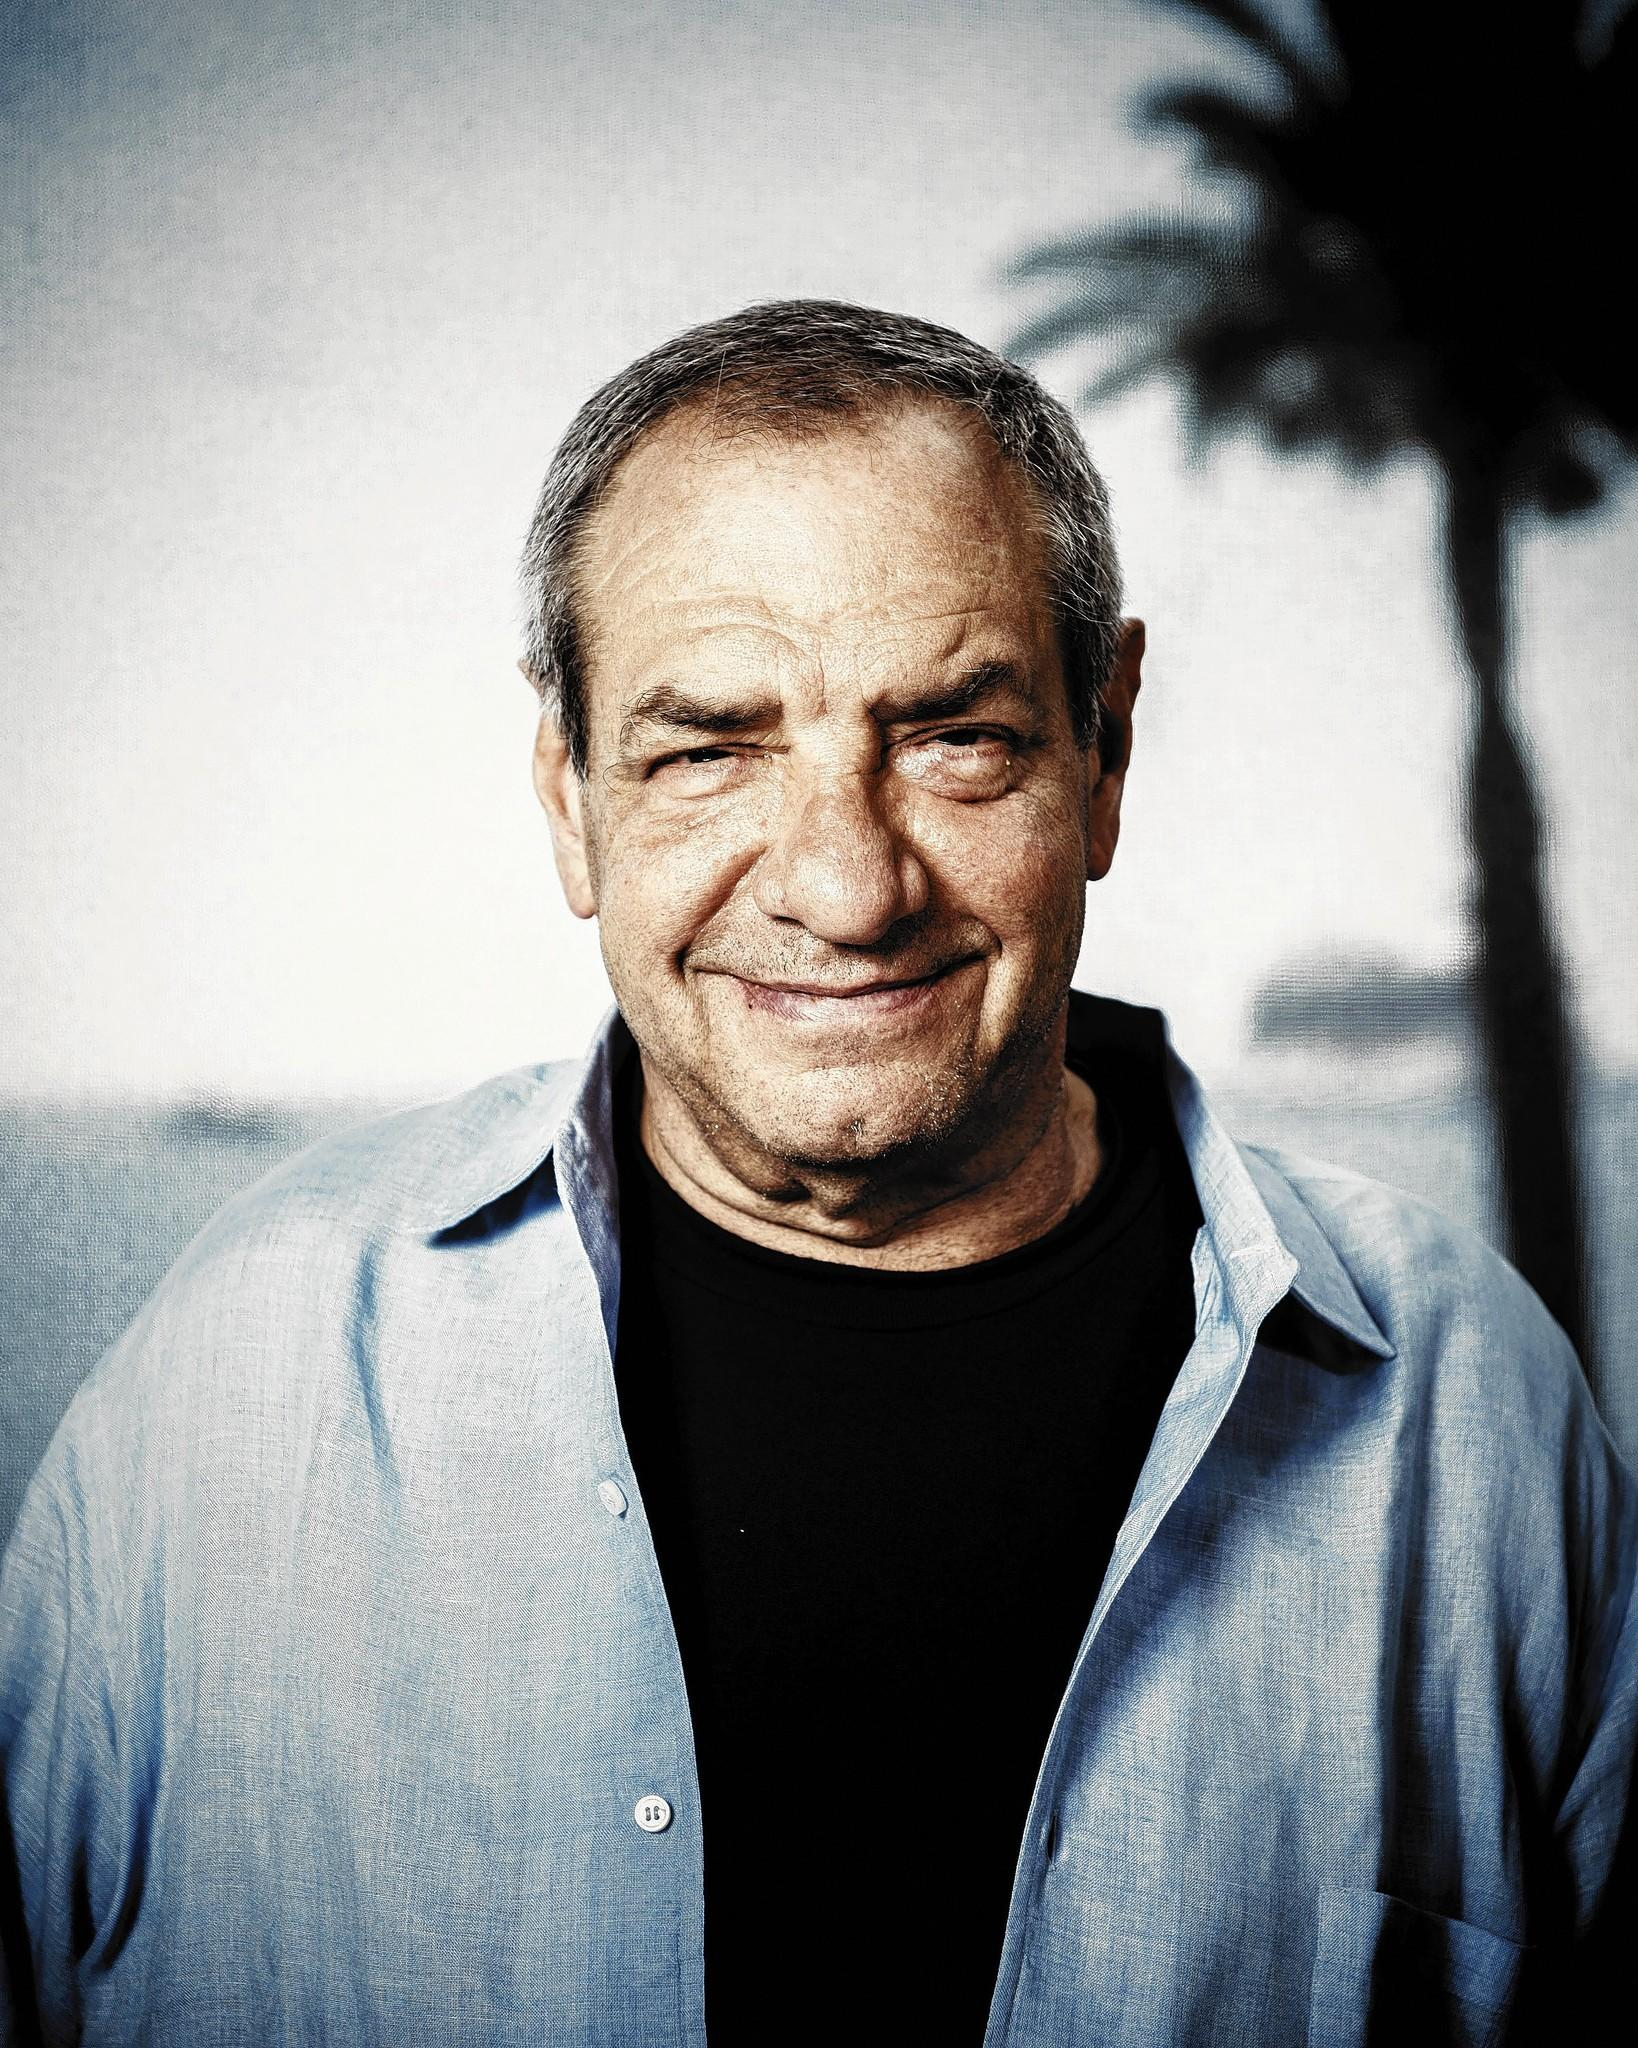 Dick Wolf poses at a portrait session during the 53rd Monte-Carlo TV Festival at Grimaldi Forum Monaco.